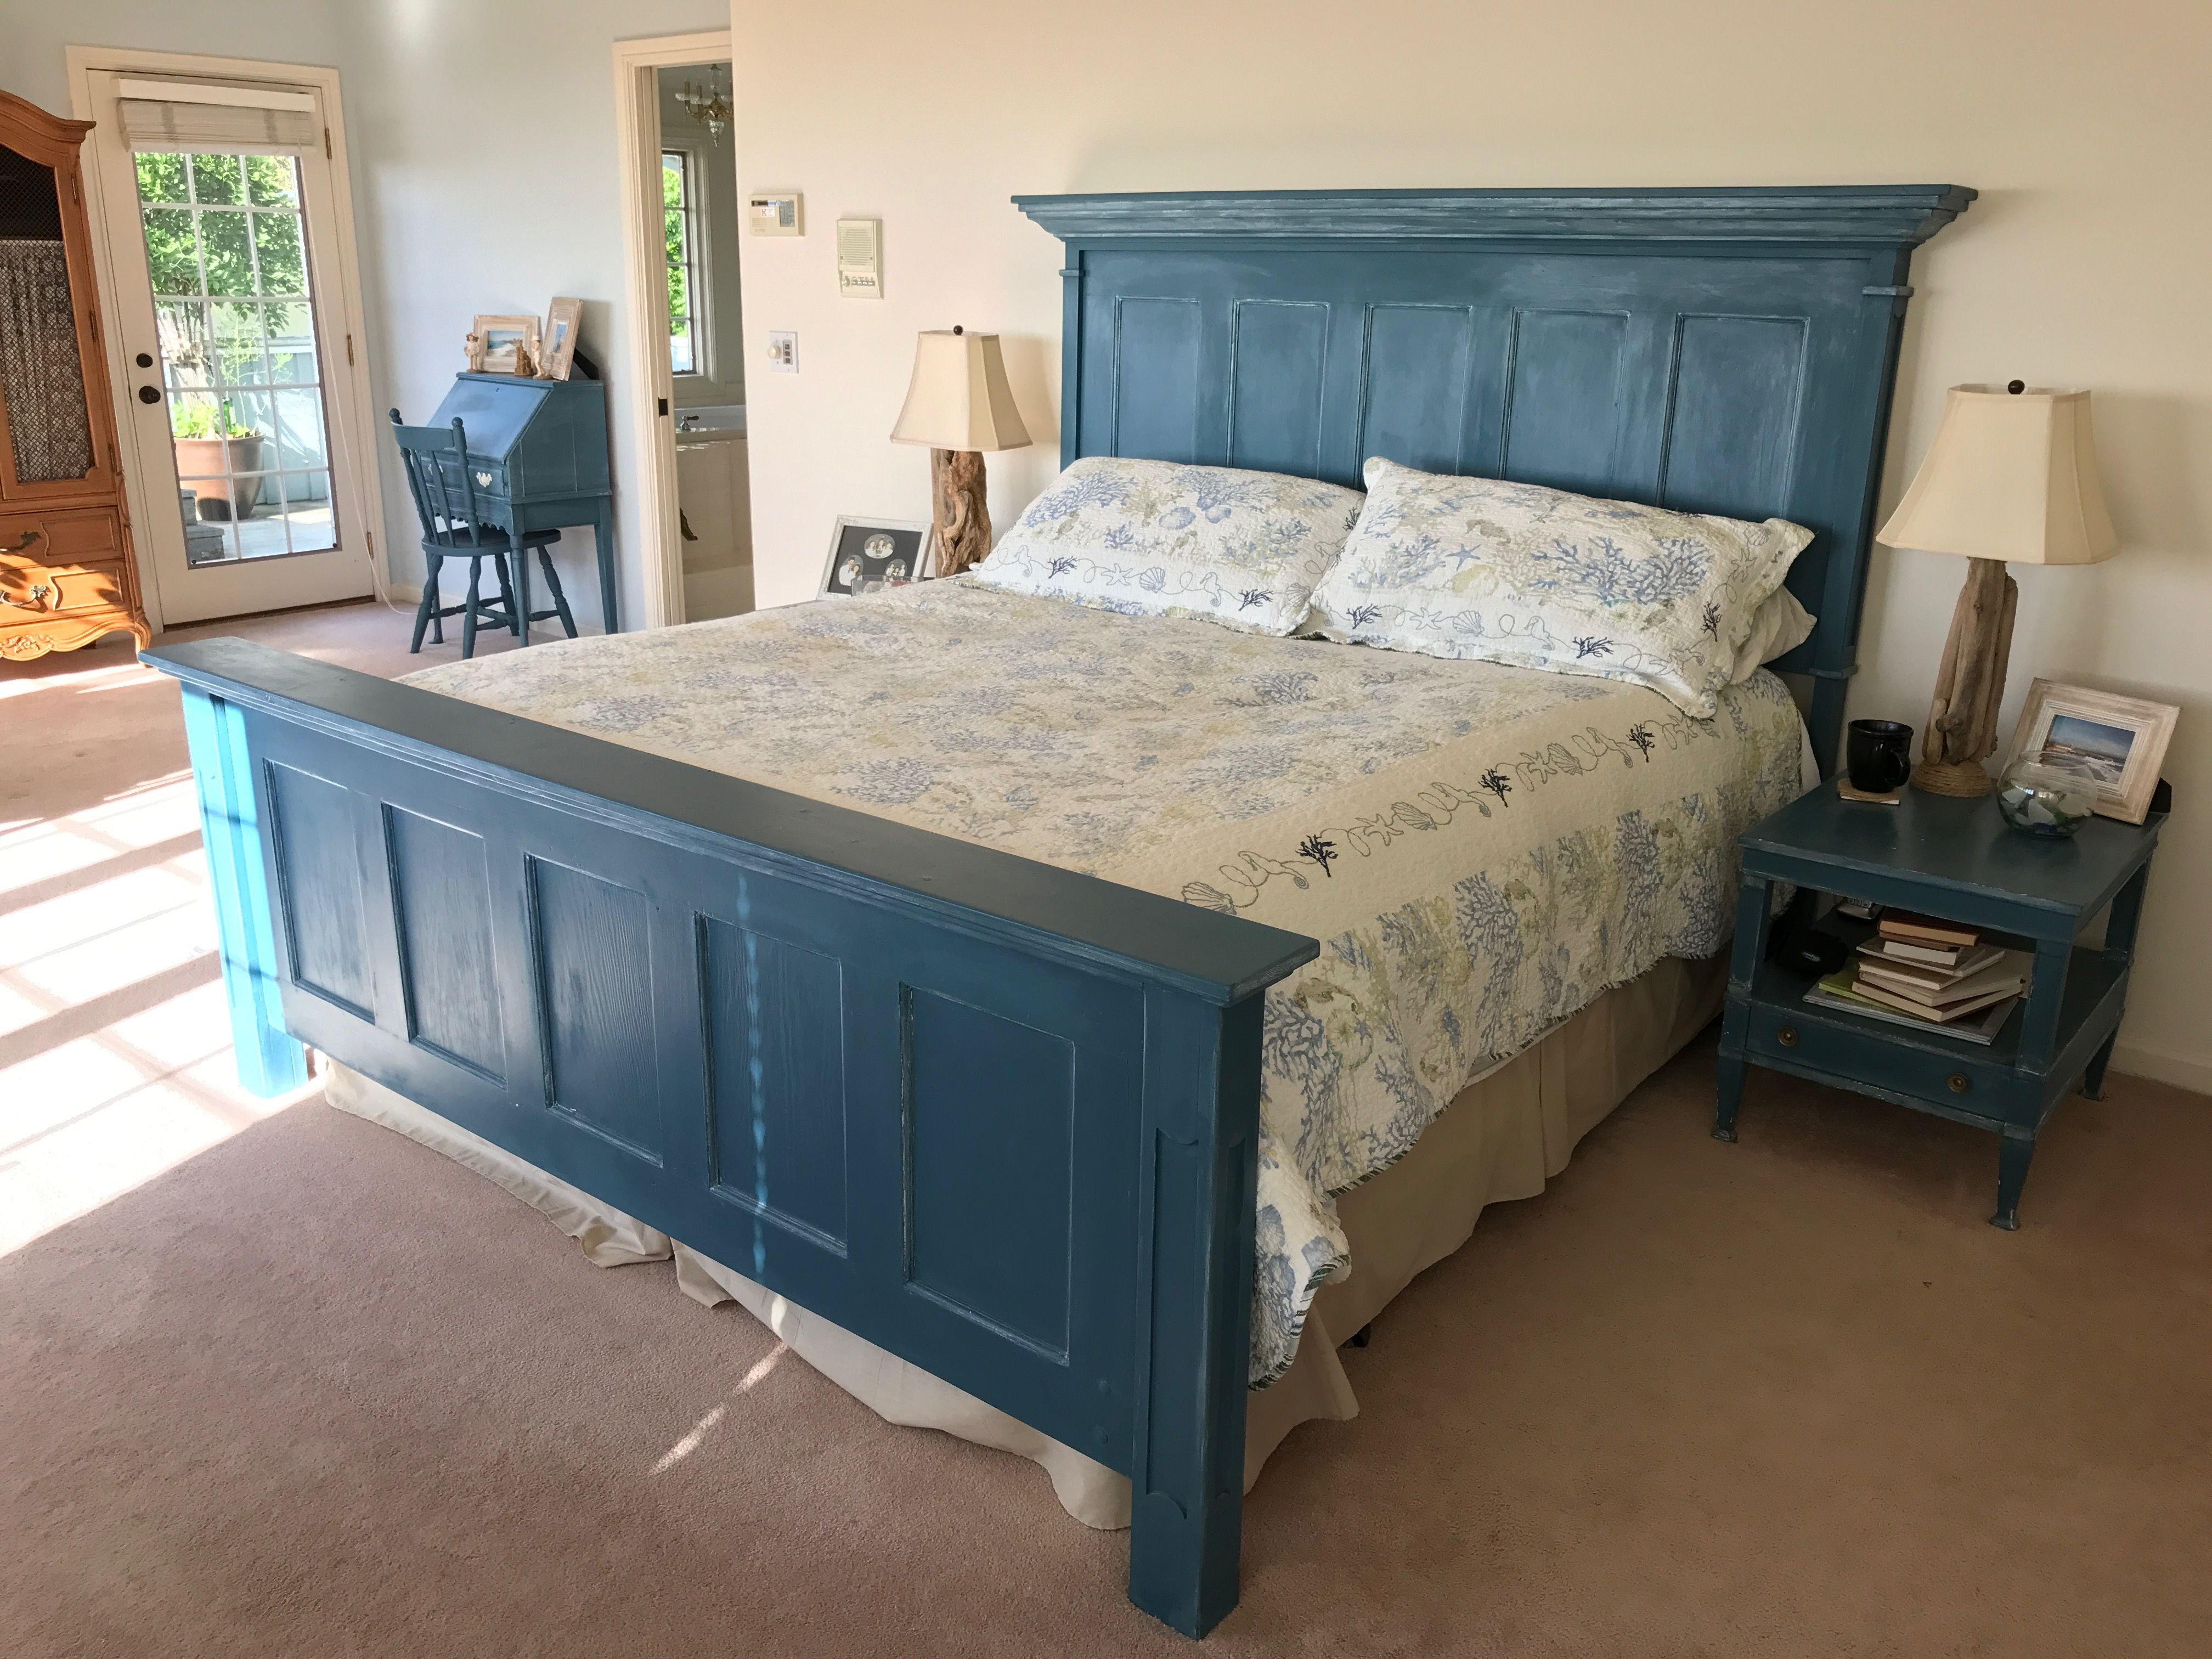 Pinterest Success I Made A Headboard And Footboard Using Recycled Five Panel Old Doors Chalk Pa Headboard From Old Door Headboard And Footboard Bedroom Diy